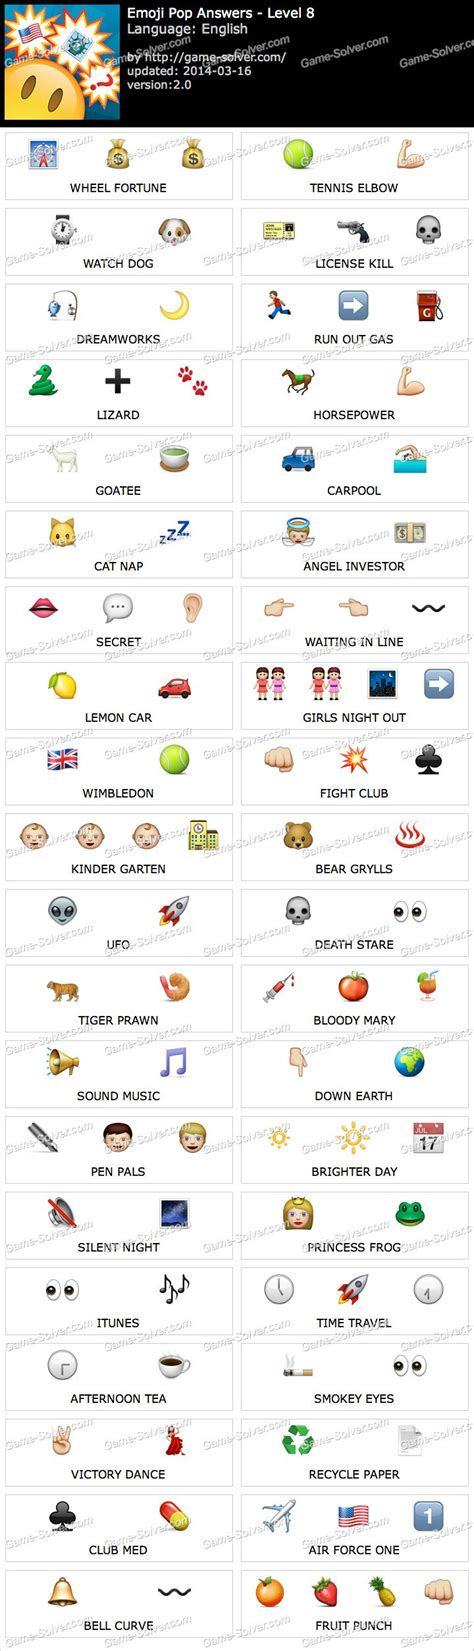 emoji pop dance emoji pop man glasses lightning www tapdance org